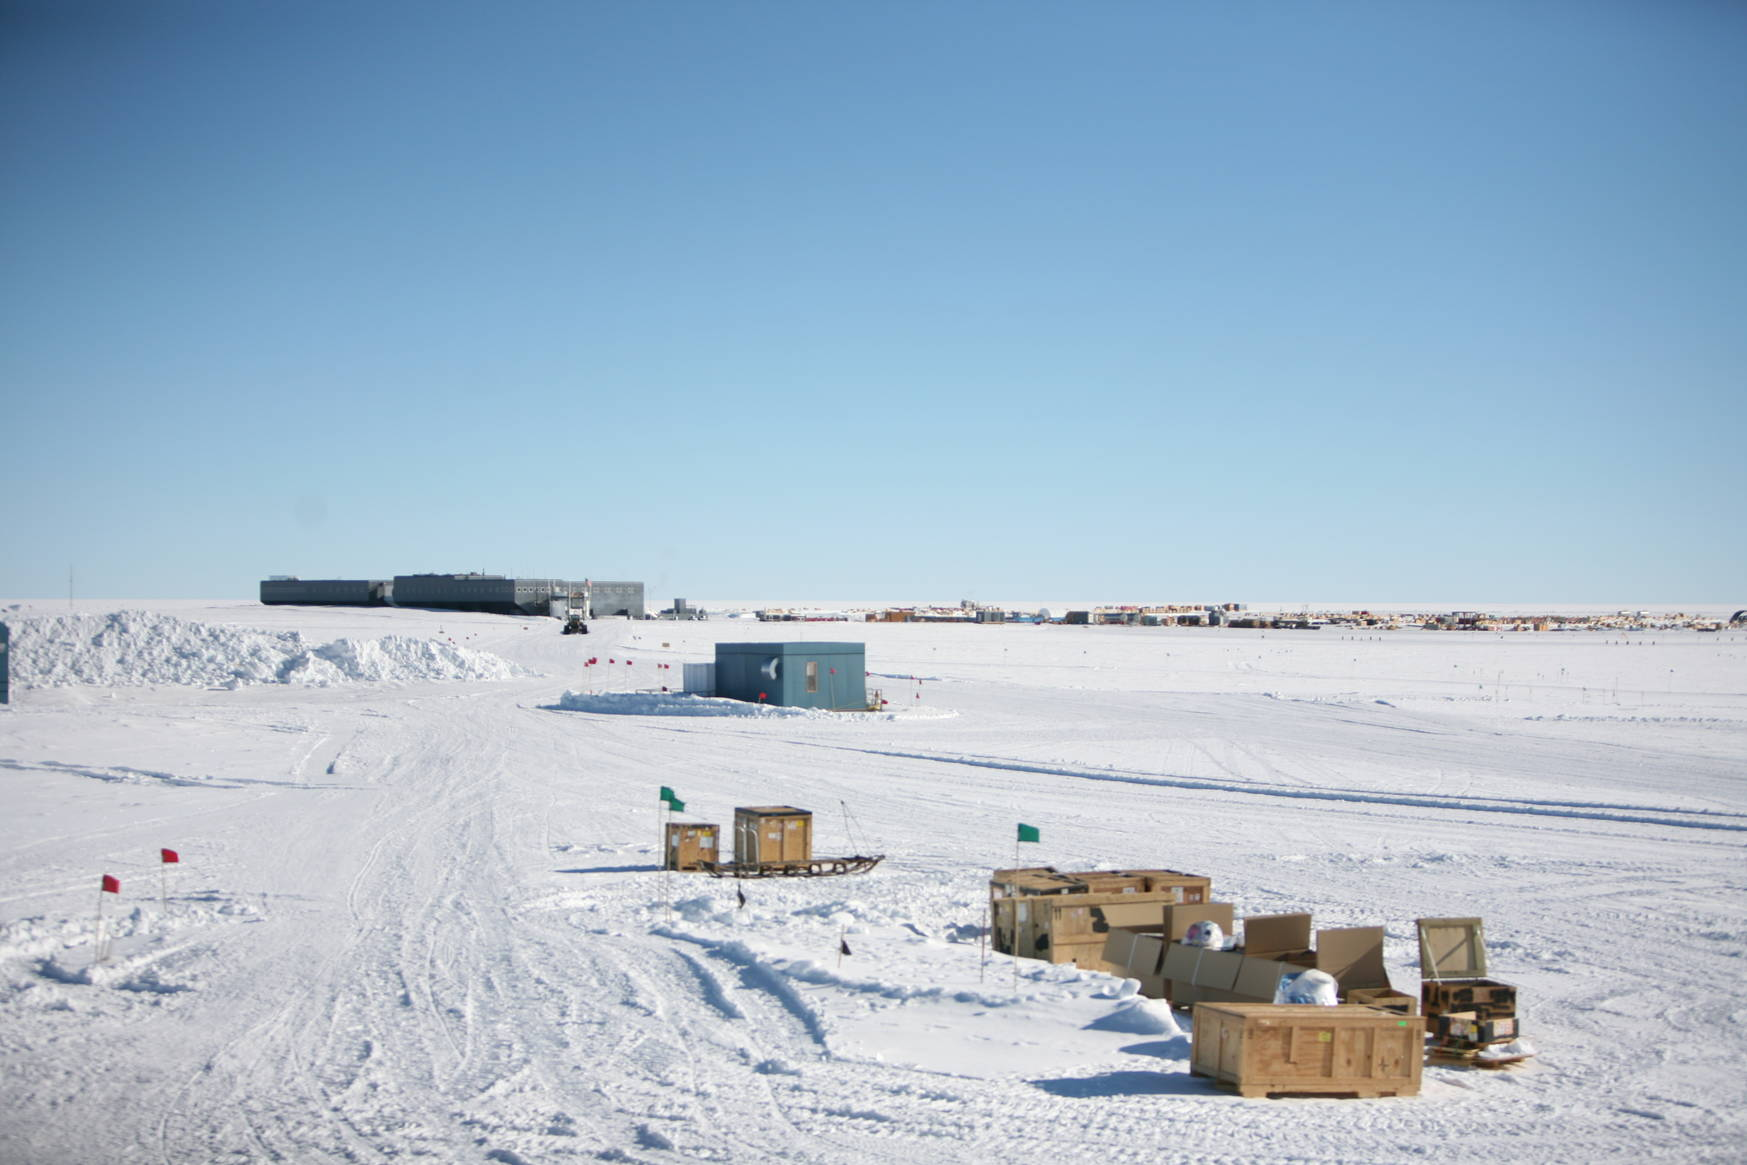 My way to work is approximately one